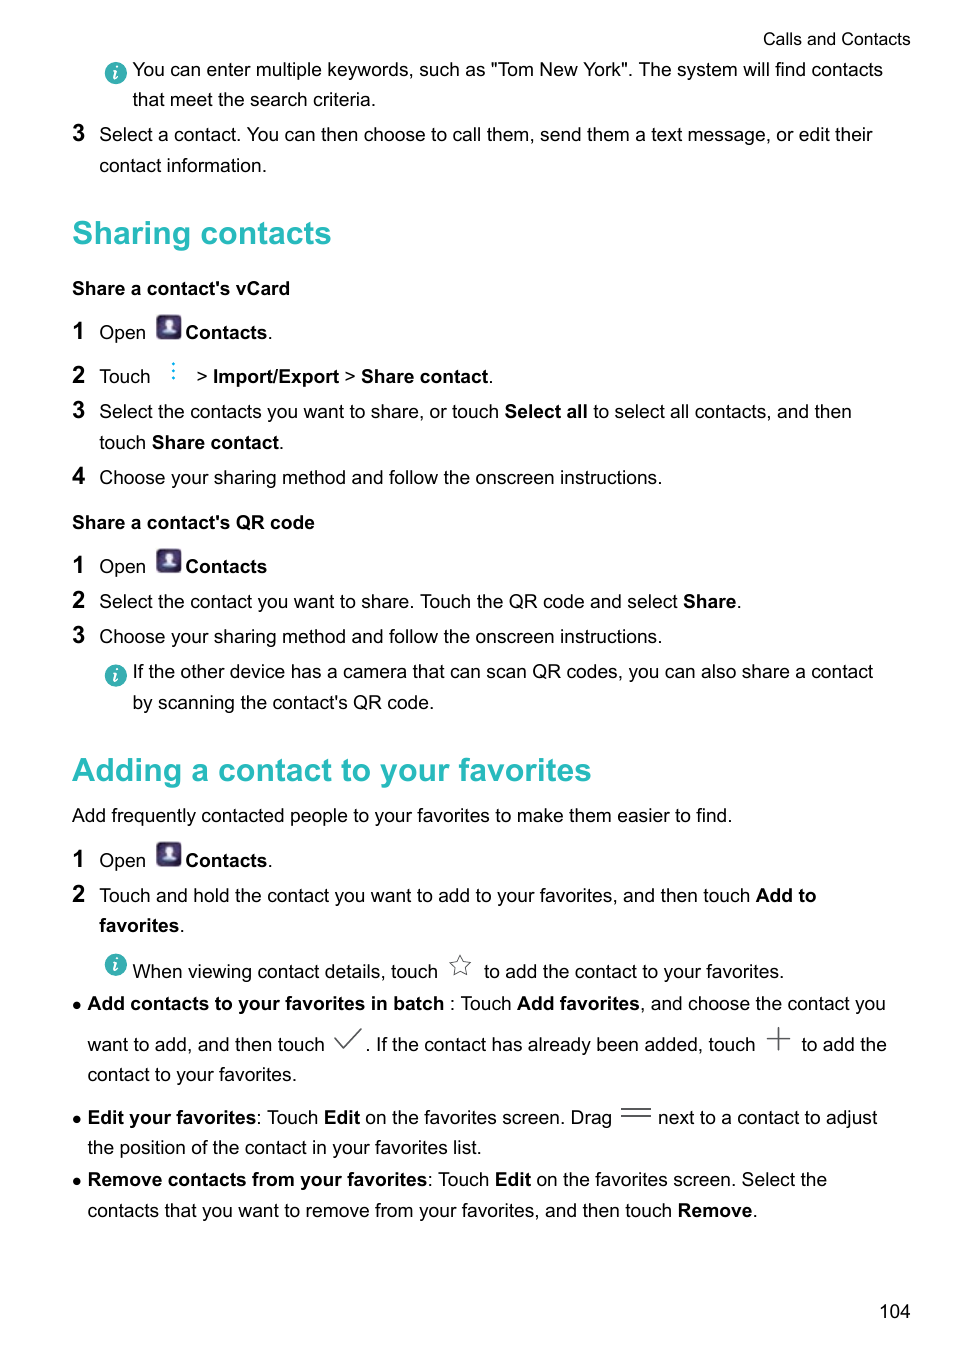 Sharing contacts, Share a contact's vcard, Share a contact's qr code